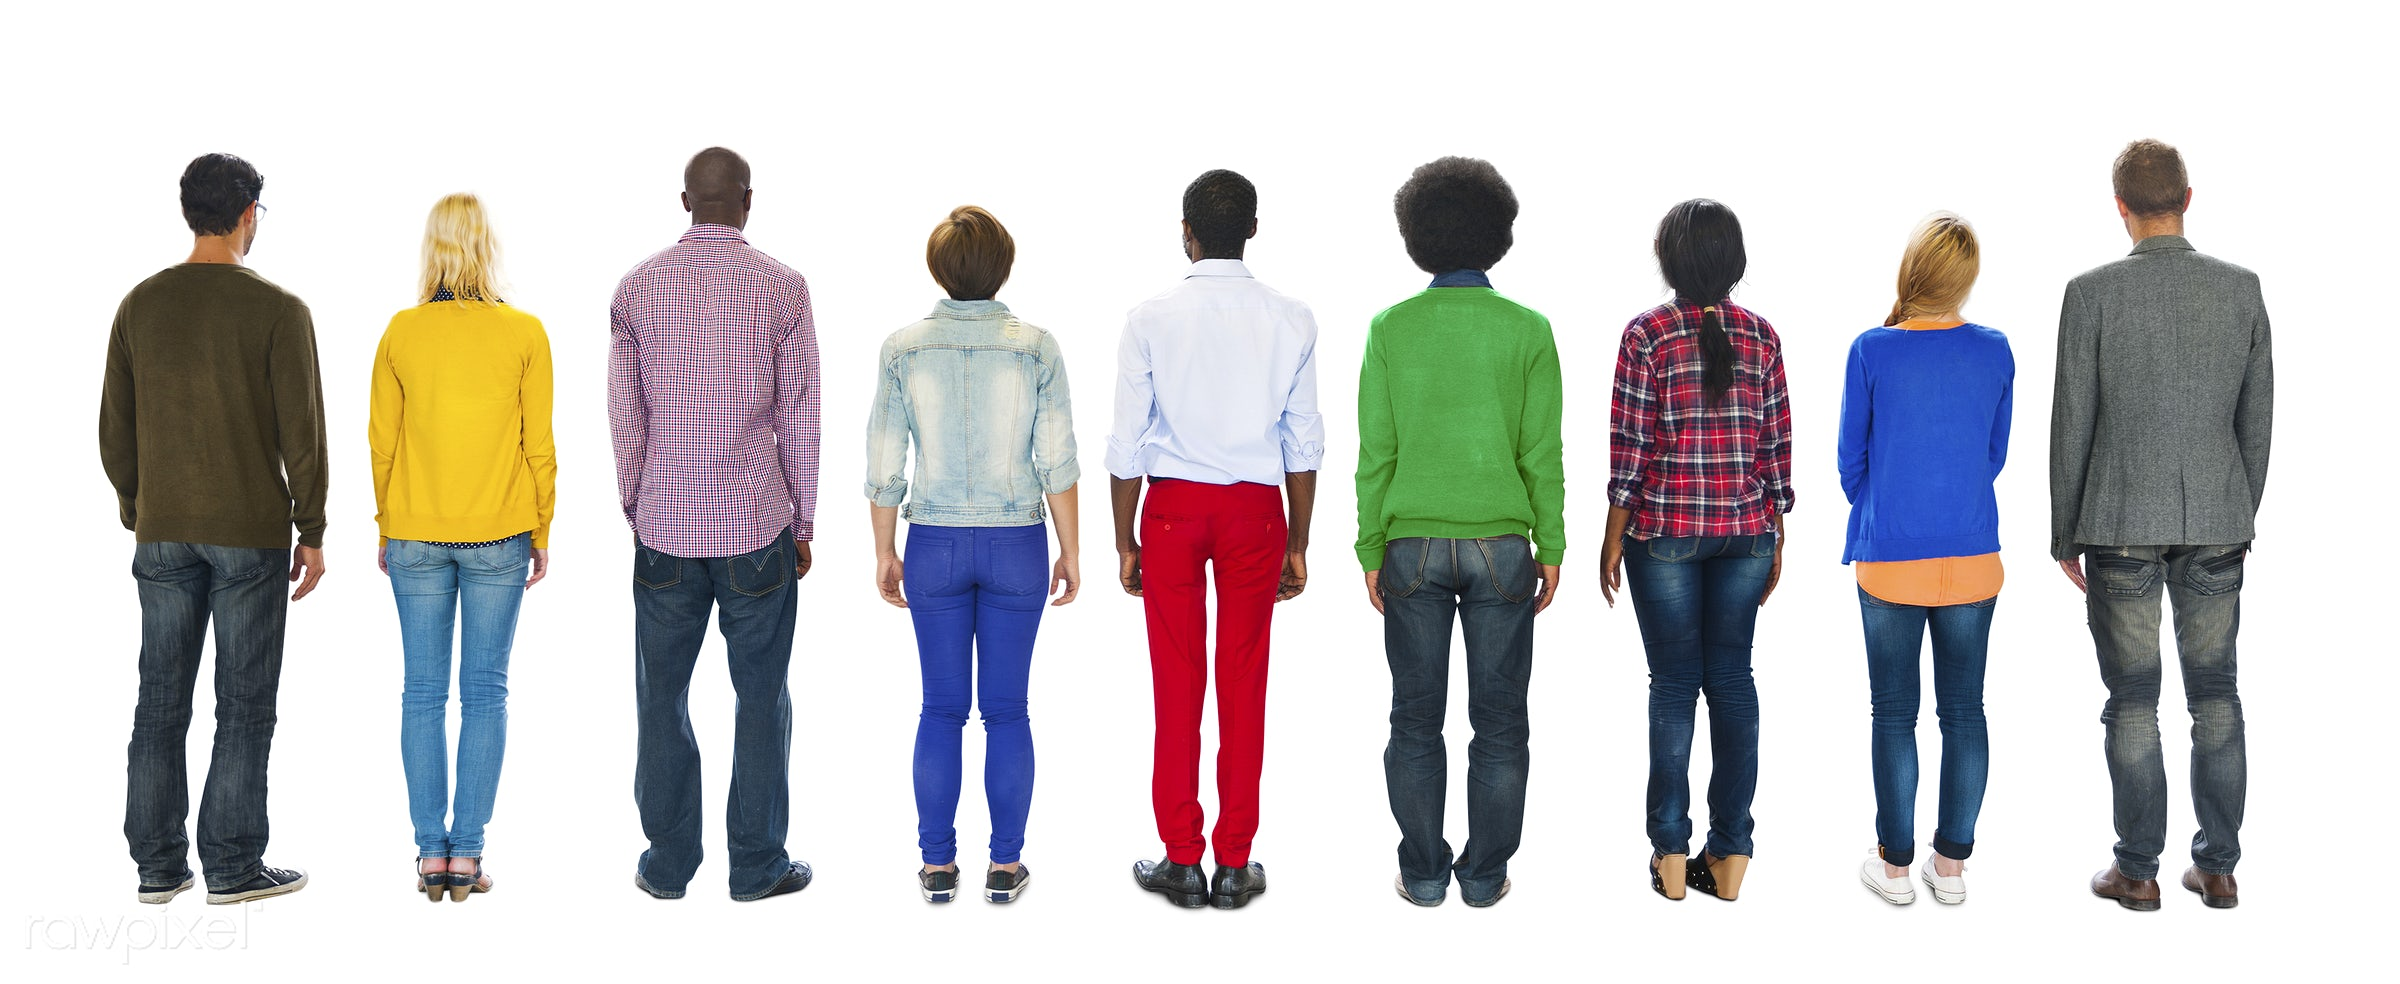 african, african descent, asian, asian ethnicity, back, back view, casual, colorful, community, diverse, diversity, ethnic,...